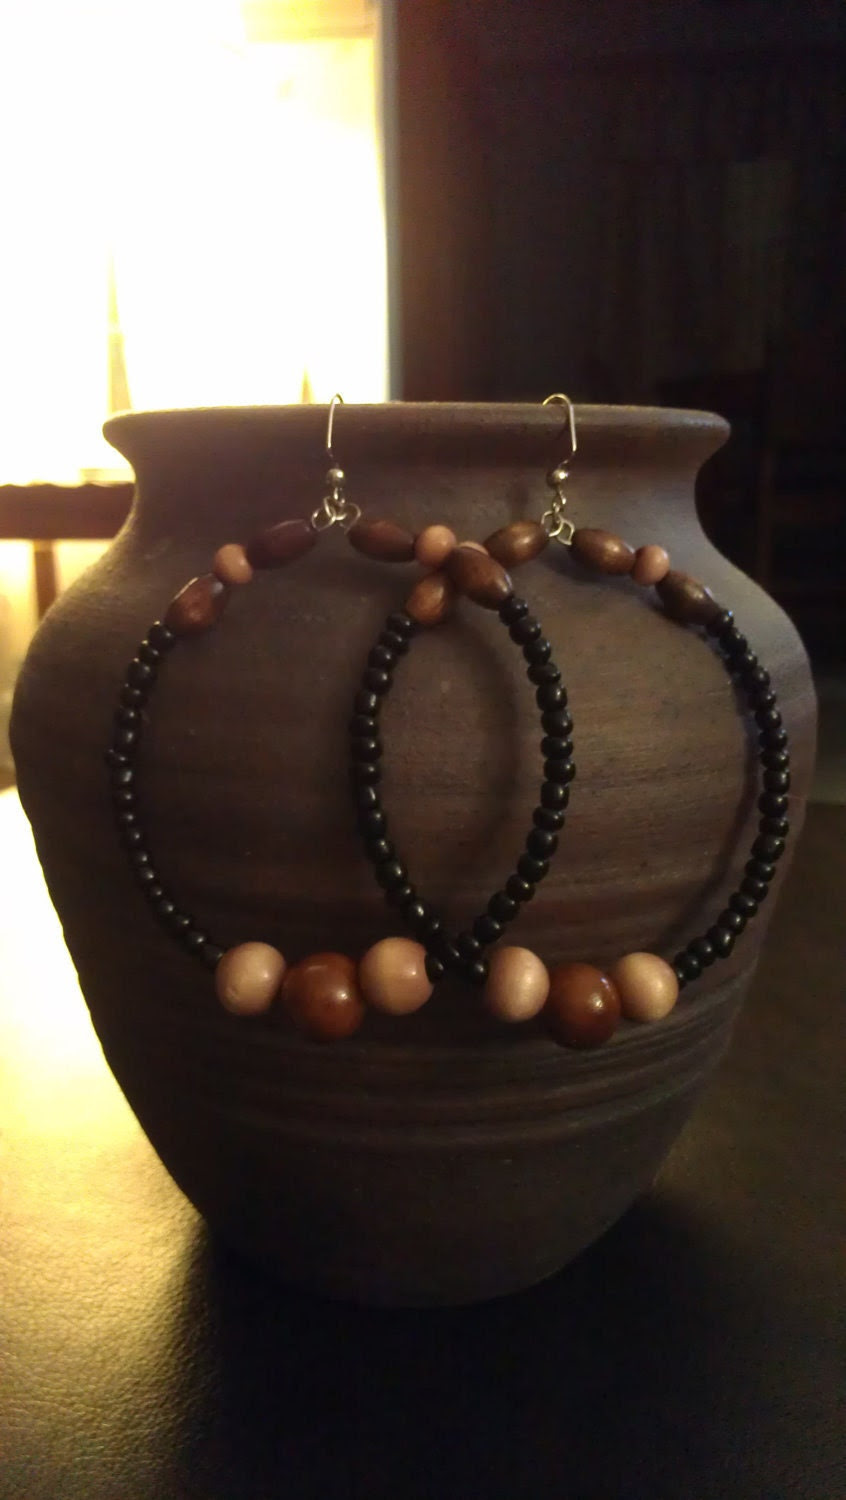 Black and Brown Beaded Hoop Earrings with Wooden and Glass Beads